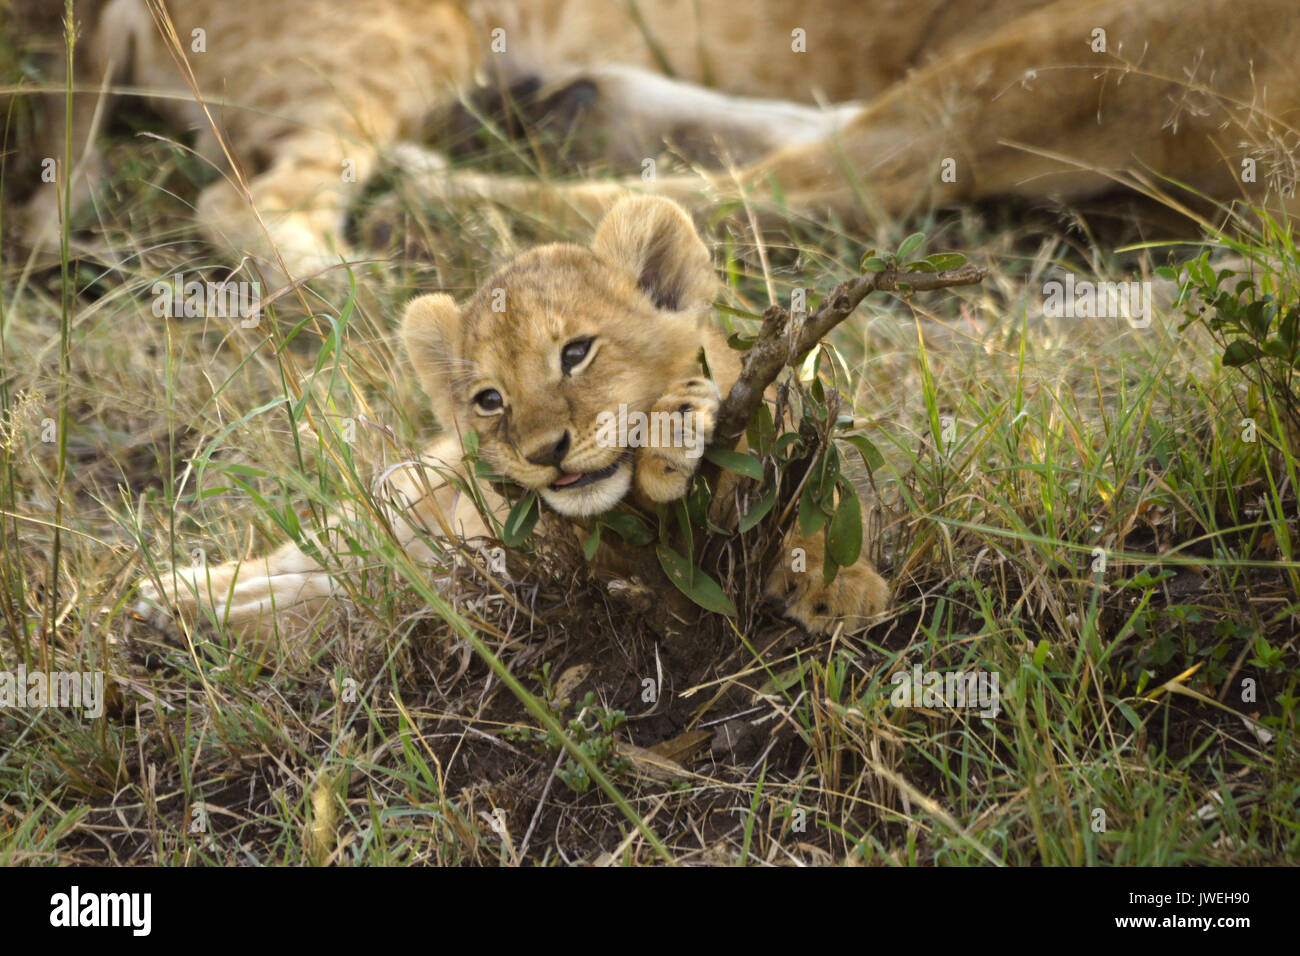 Tiny lion cub playing with twig while the rest of the pride sleeps, Masai Mara Game Reserve, Kenya - Stock Image